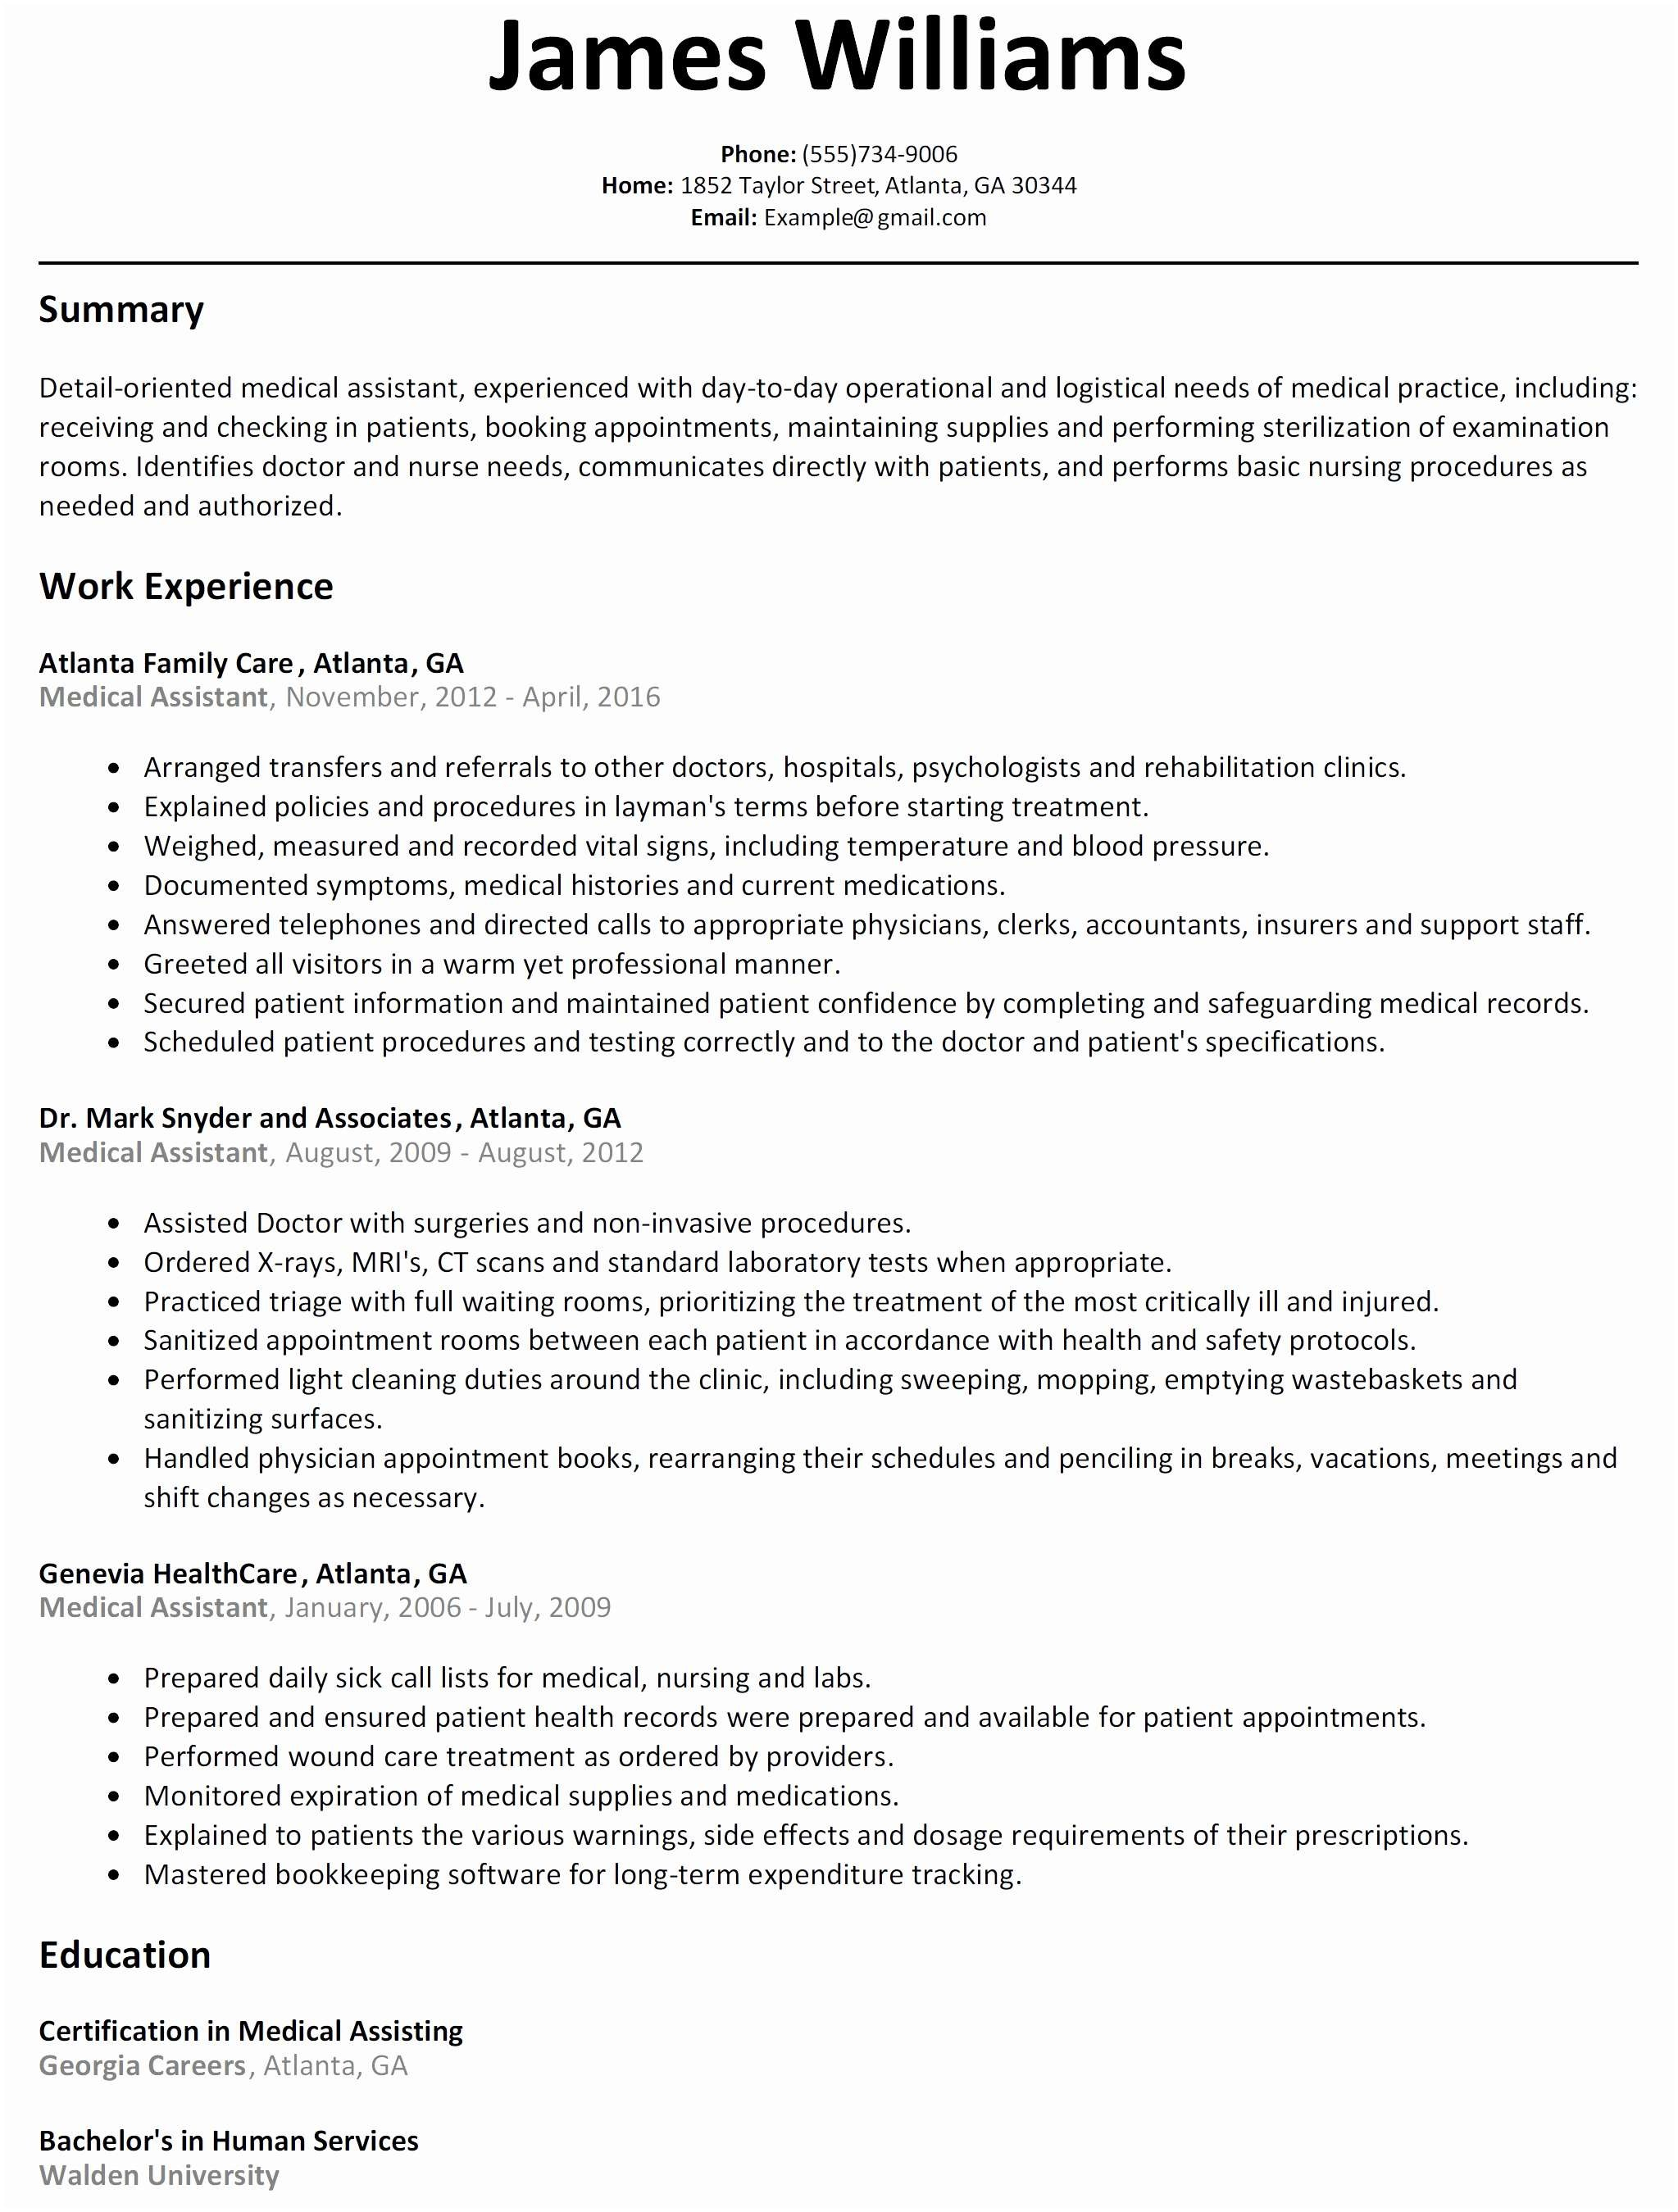 Nursing Student Resume with No Experience - Sample Resume for Registered Nurse with No Experience